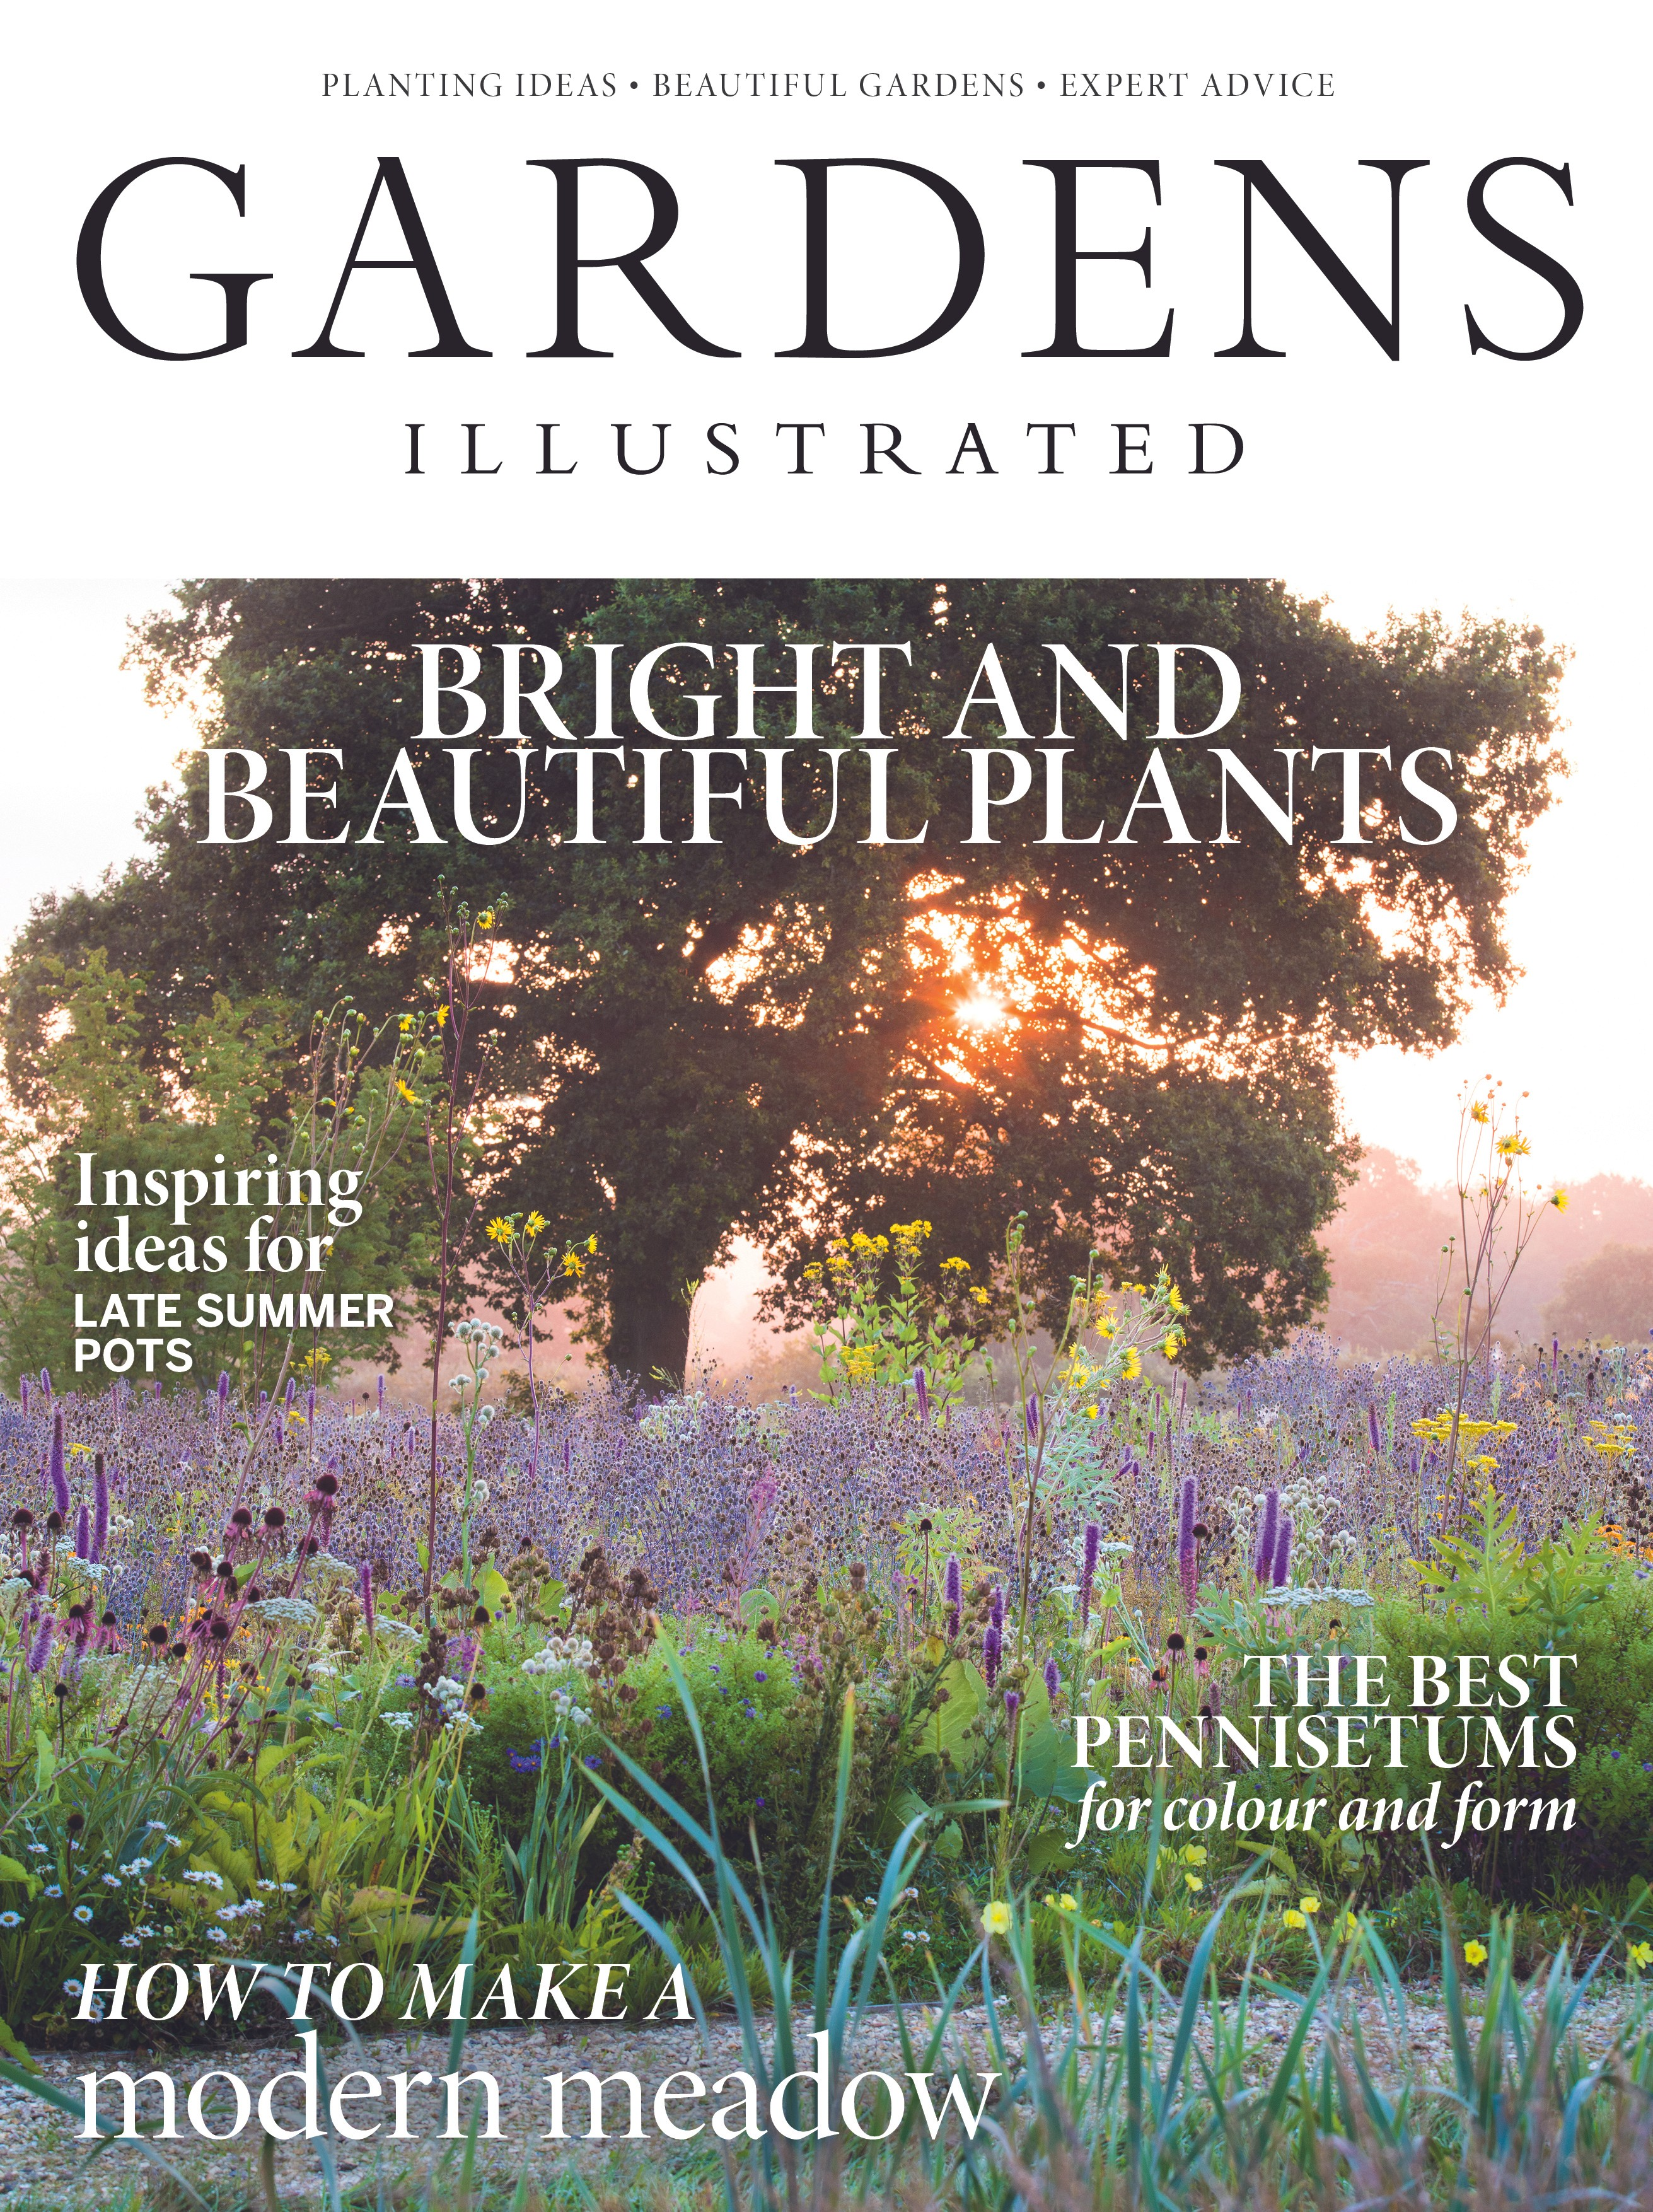 September 2018 issue of Gardens Illustrated cover by Claire Takacs